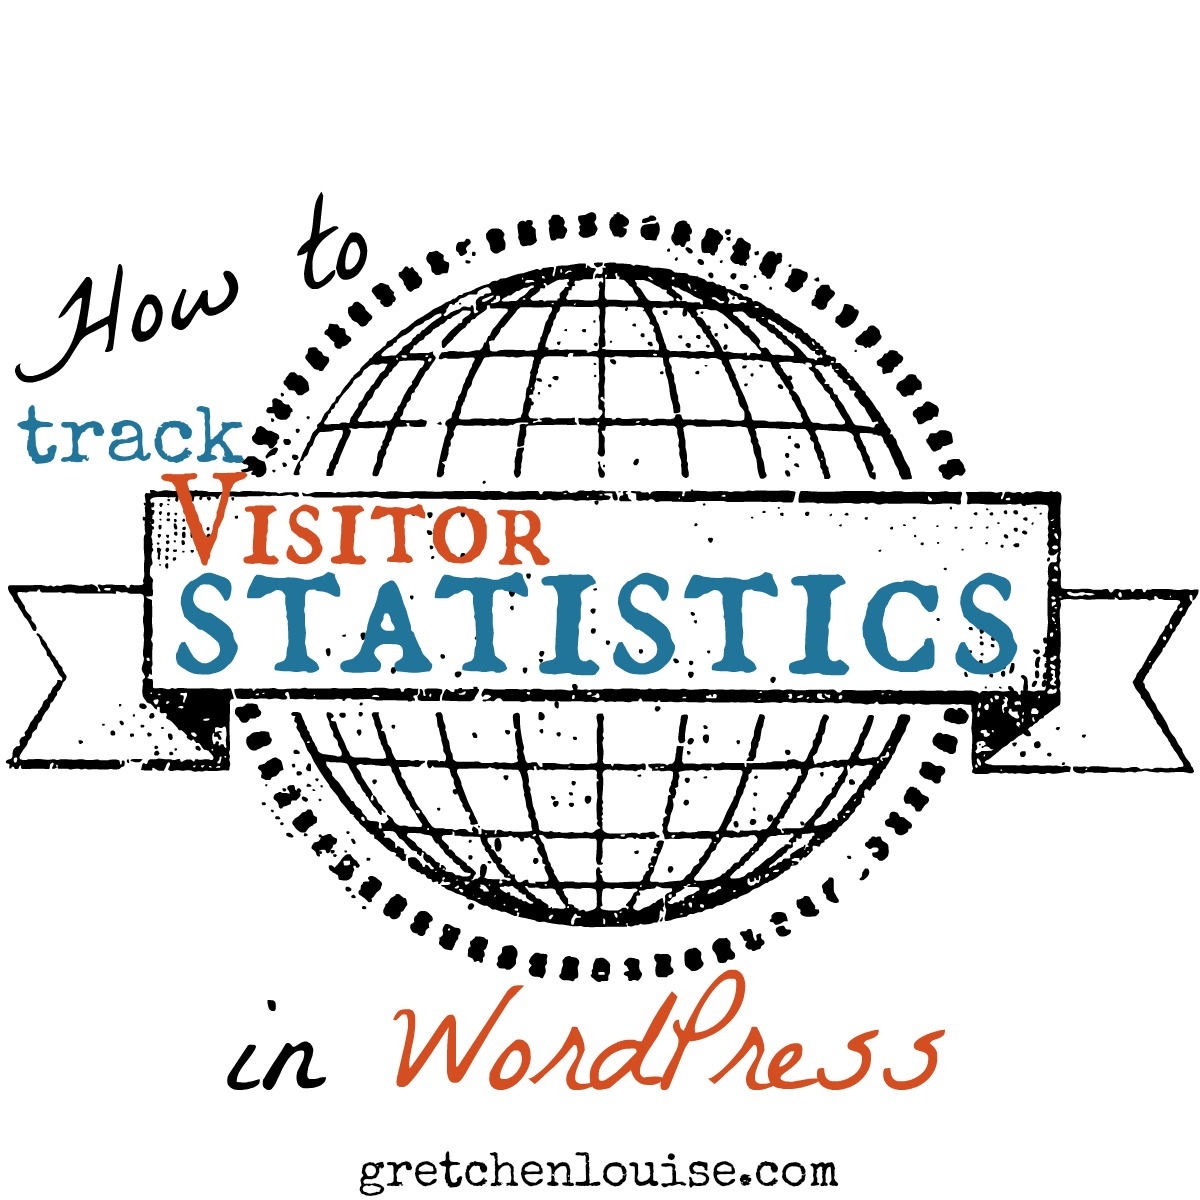 How to track Visitor Statistics in WordPress